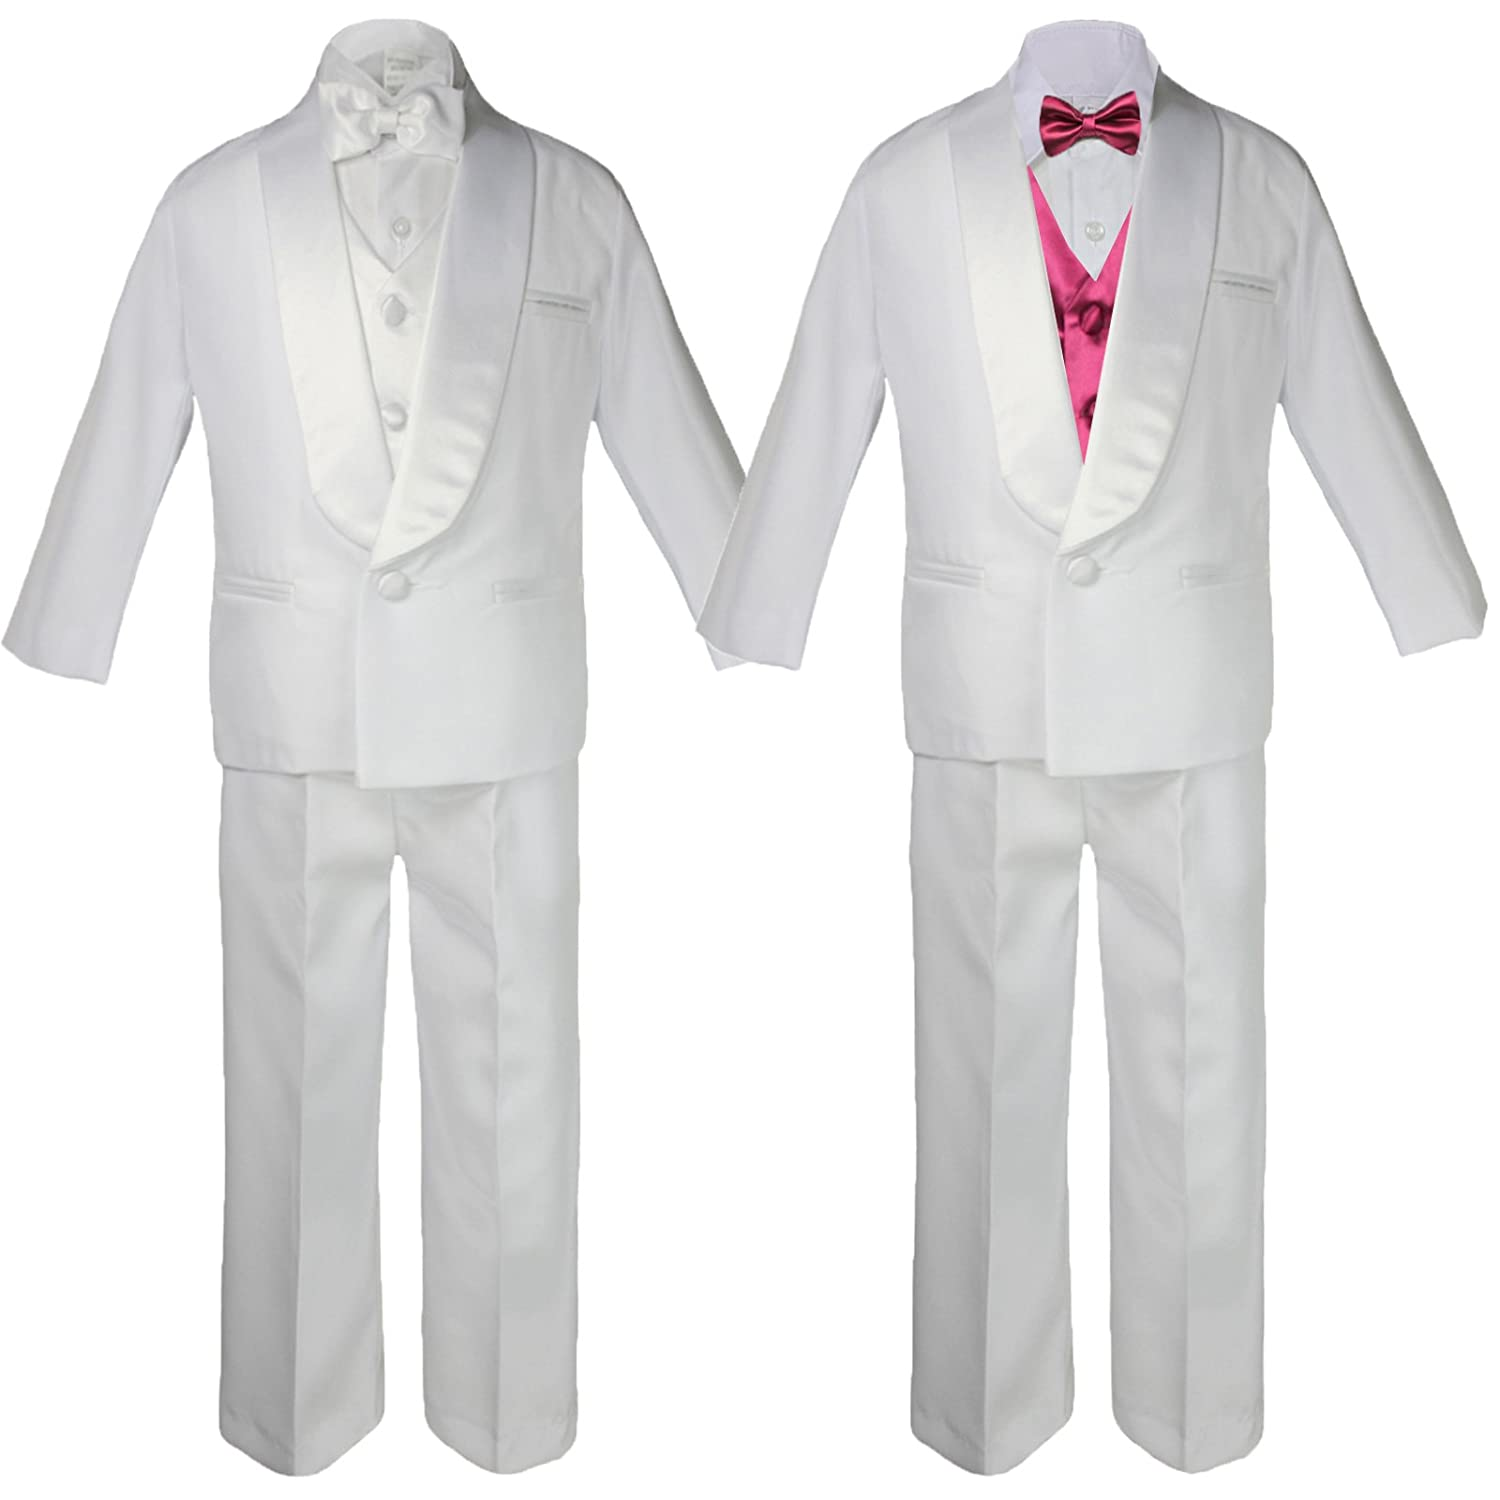 5-7pc Boy White Satin Shawl Lapel Suits Tuxedo BURGUNDY Satin Bow Necktie Vest